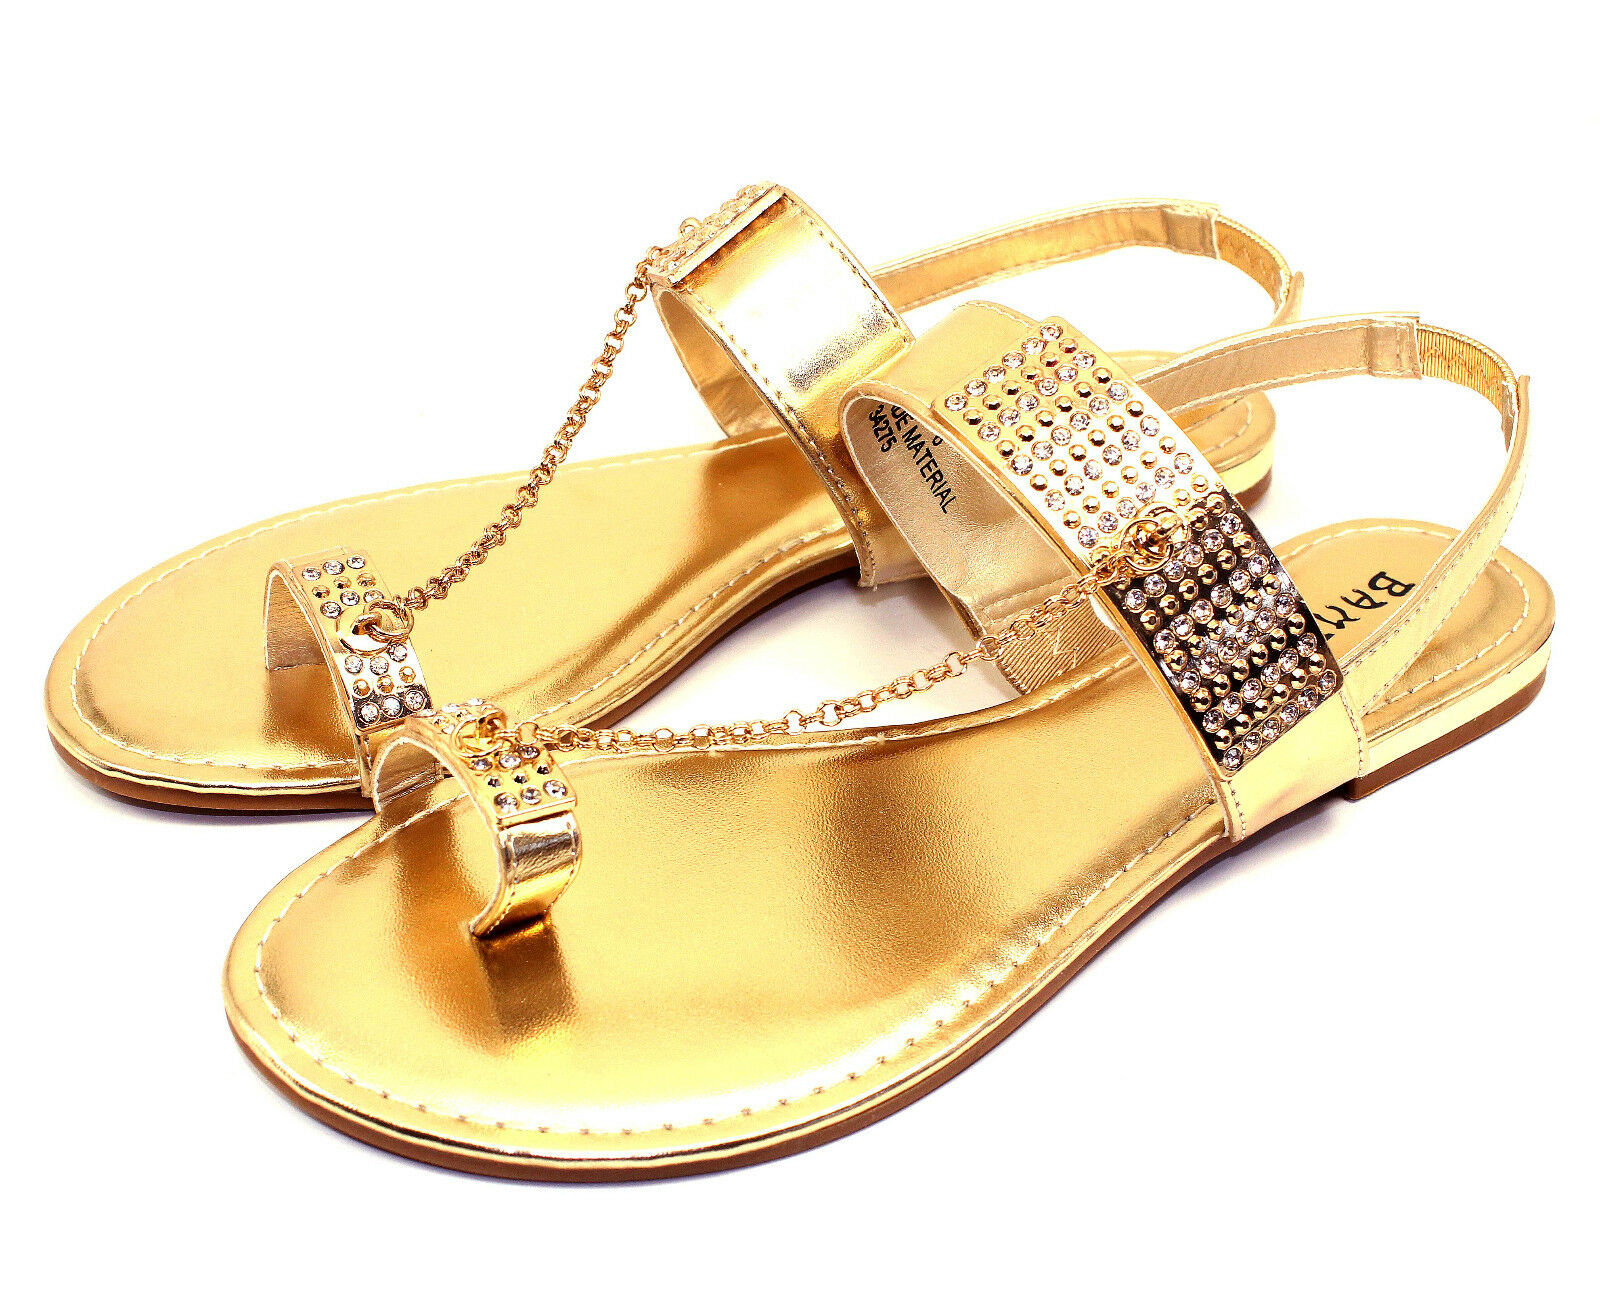 Ambra-77 Blink Blink Ambra-77 Chain Stone Flats Sandals Gladiator Party Women Shoes Gold 7.5 7591cf